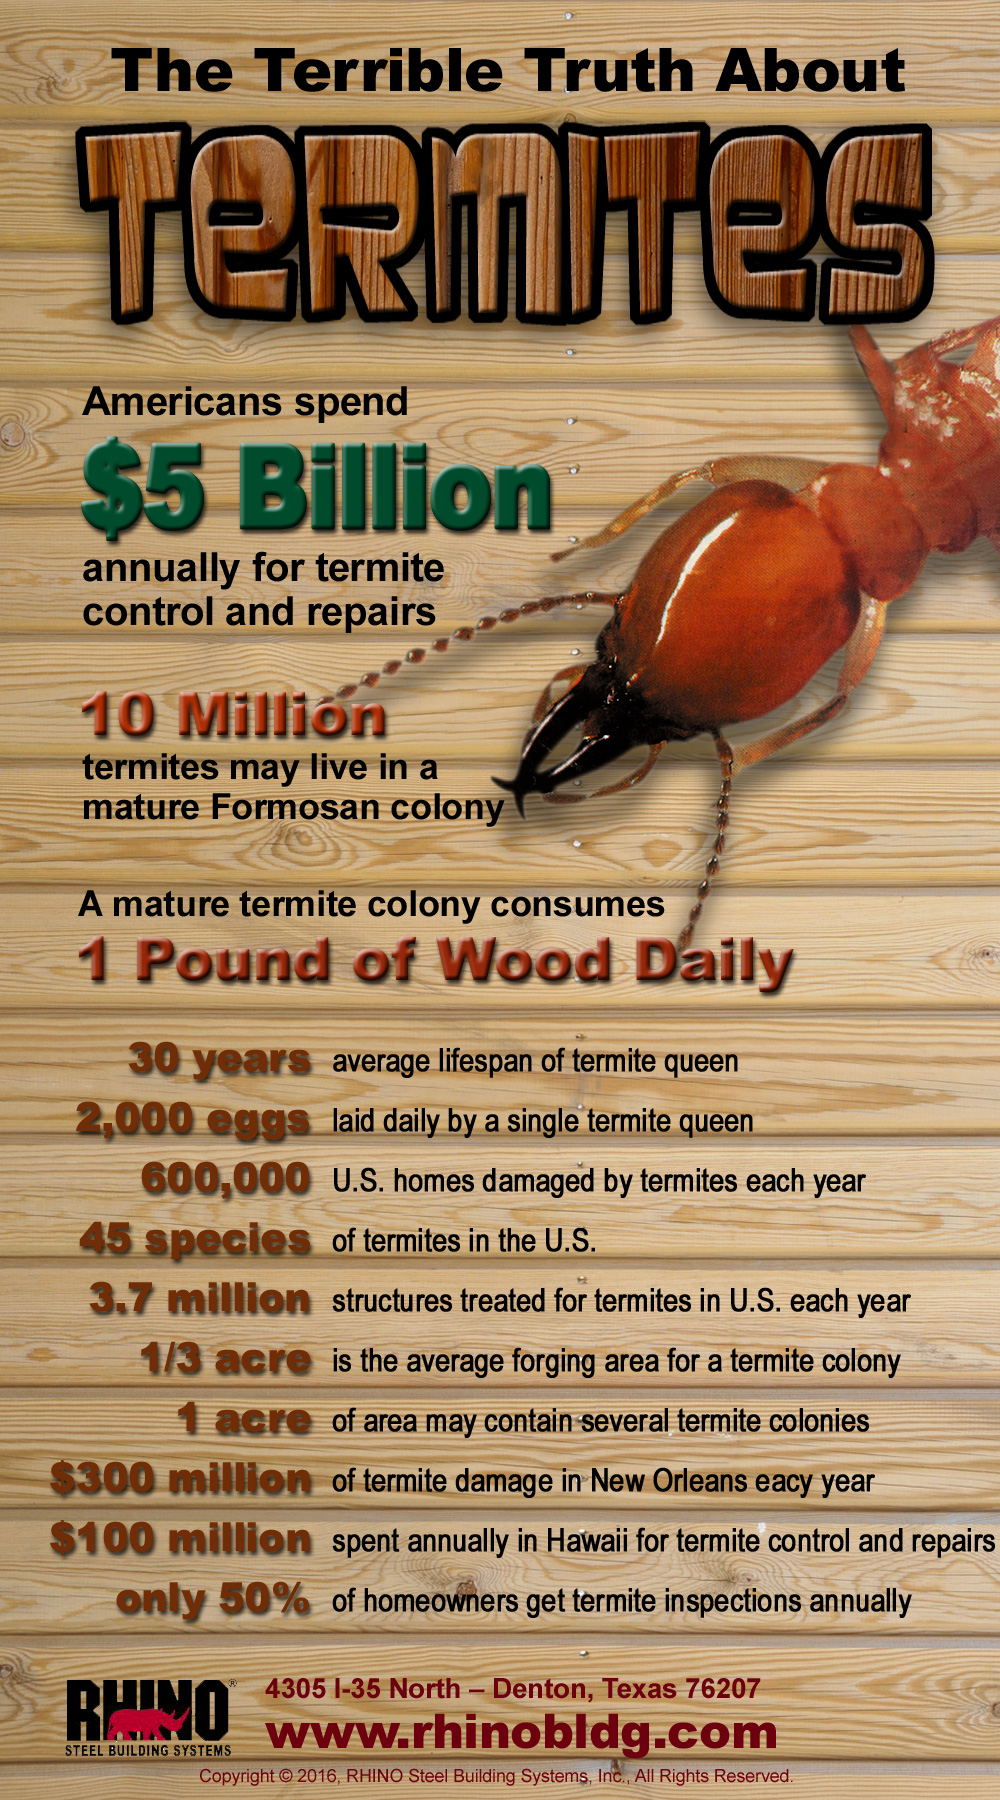 An infographic with the shocking costs of termites in the U.S.